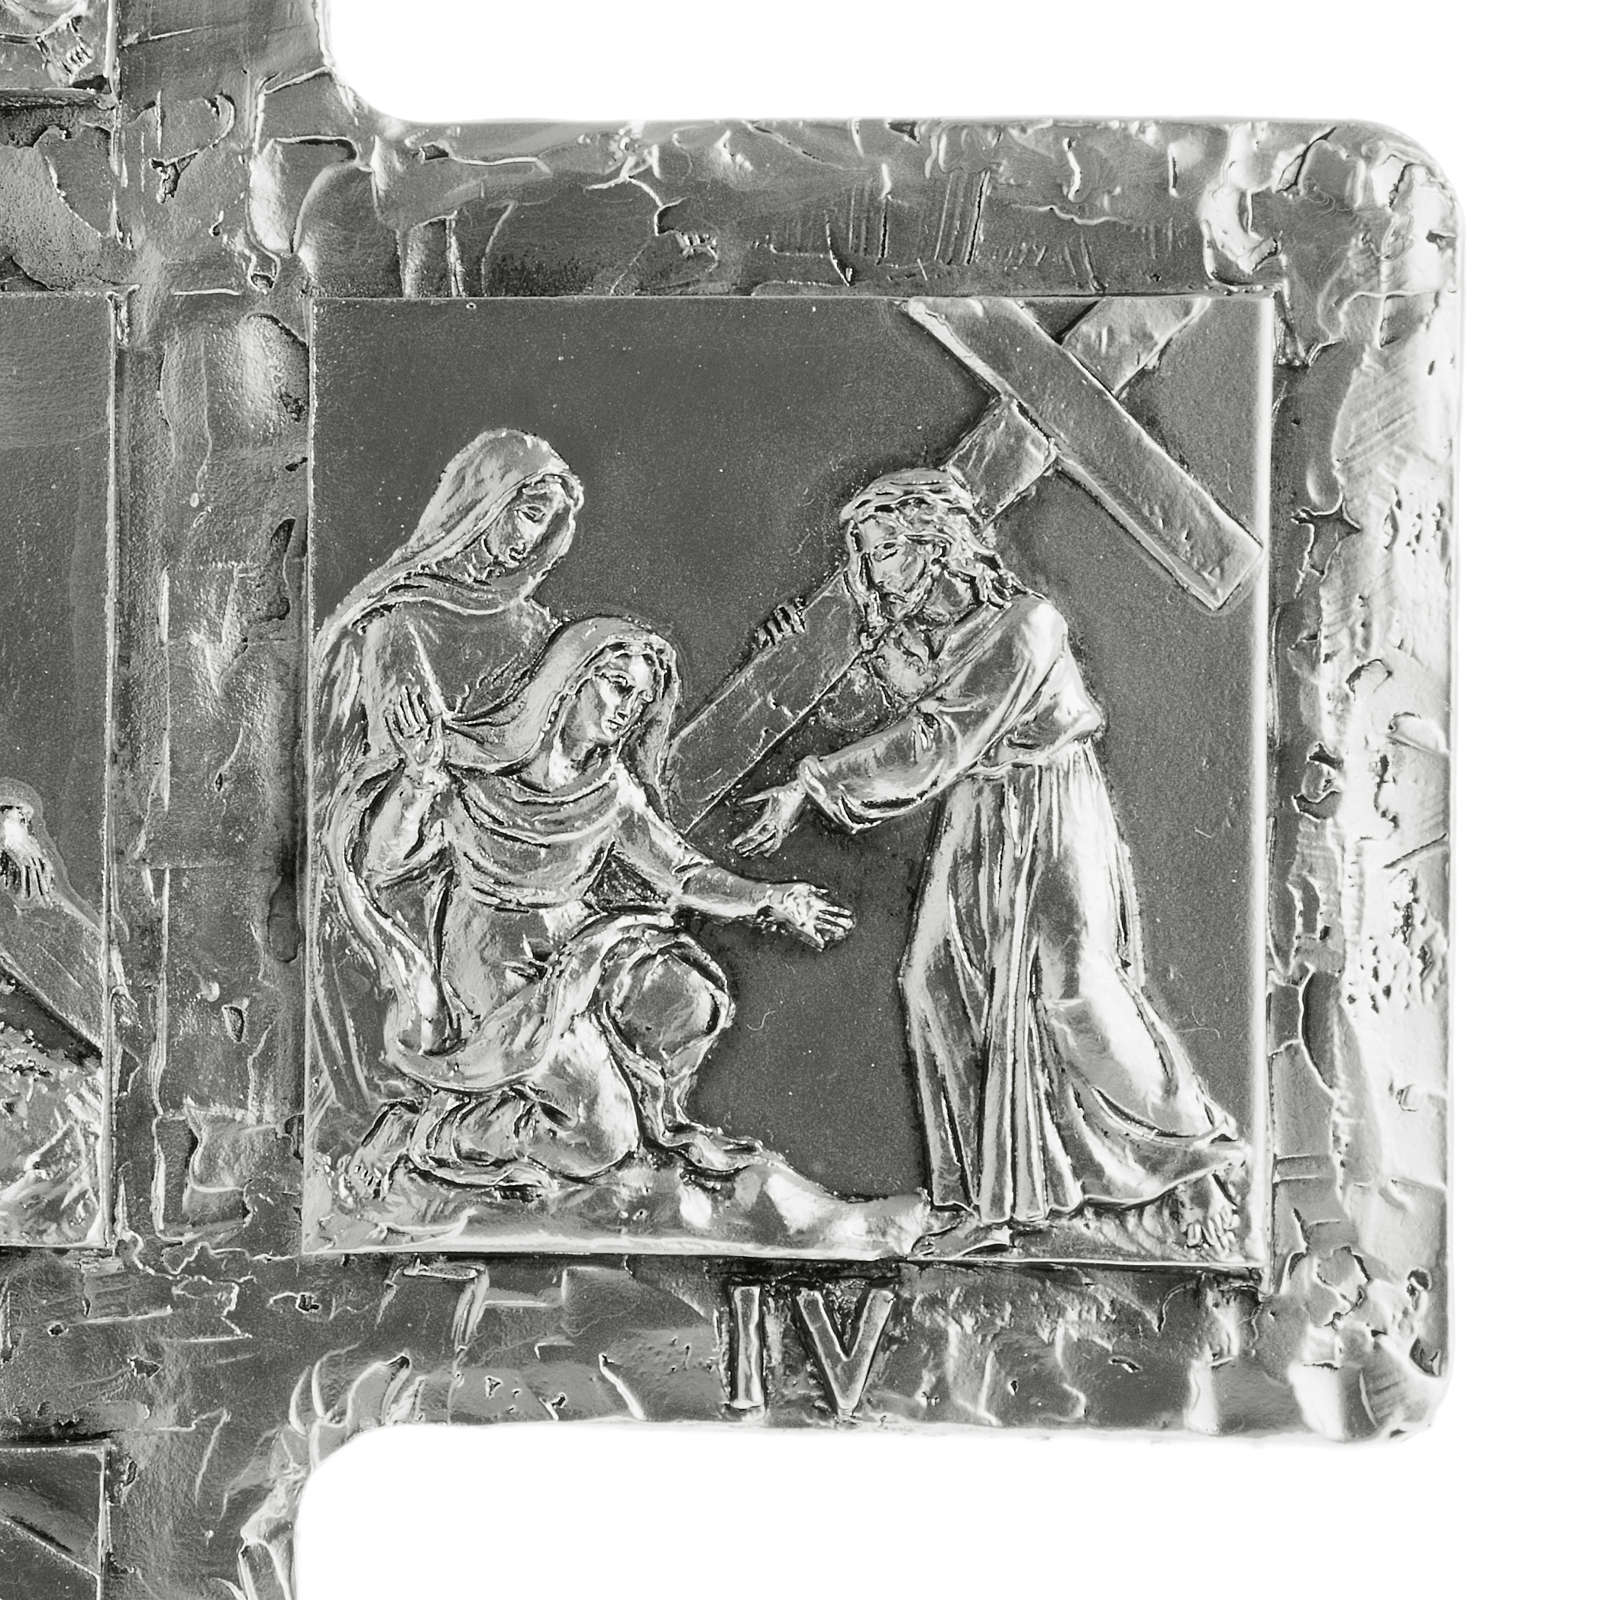 Crucifix, silver table cross with Way of the Cross 4